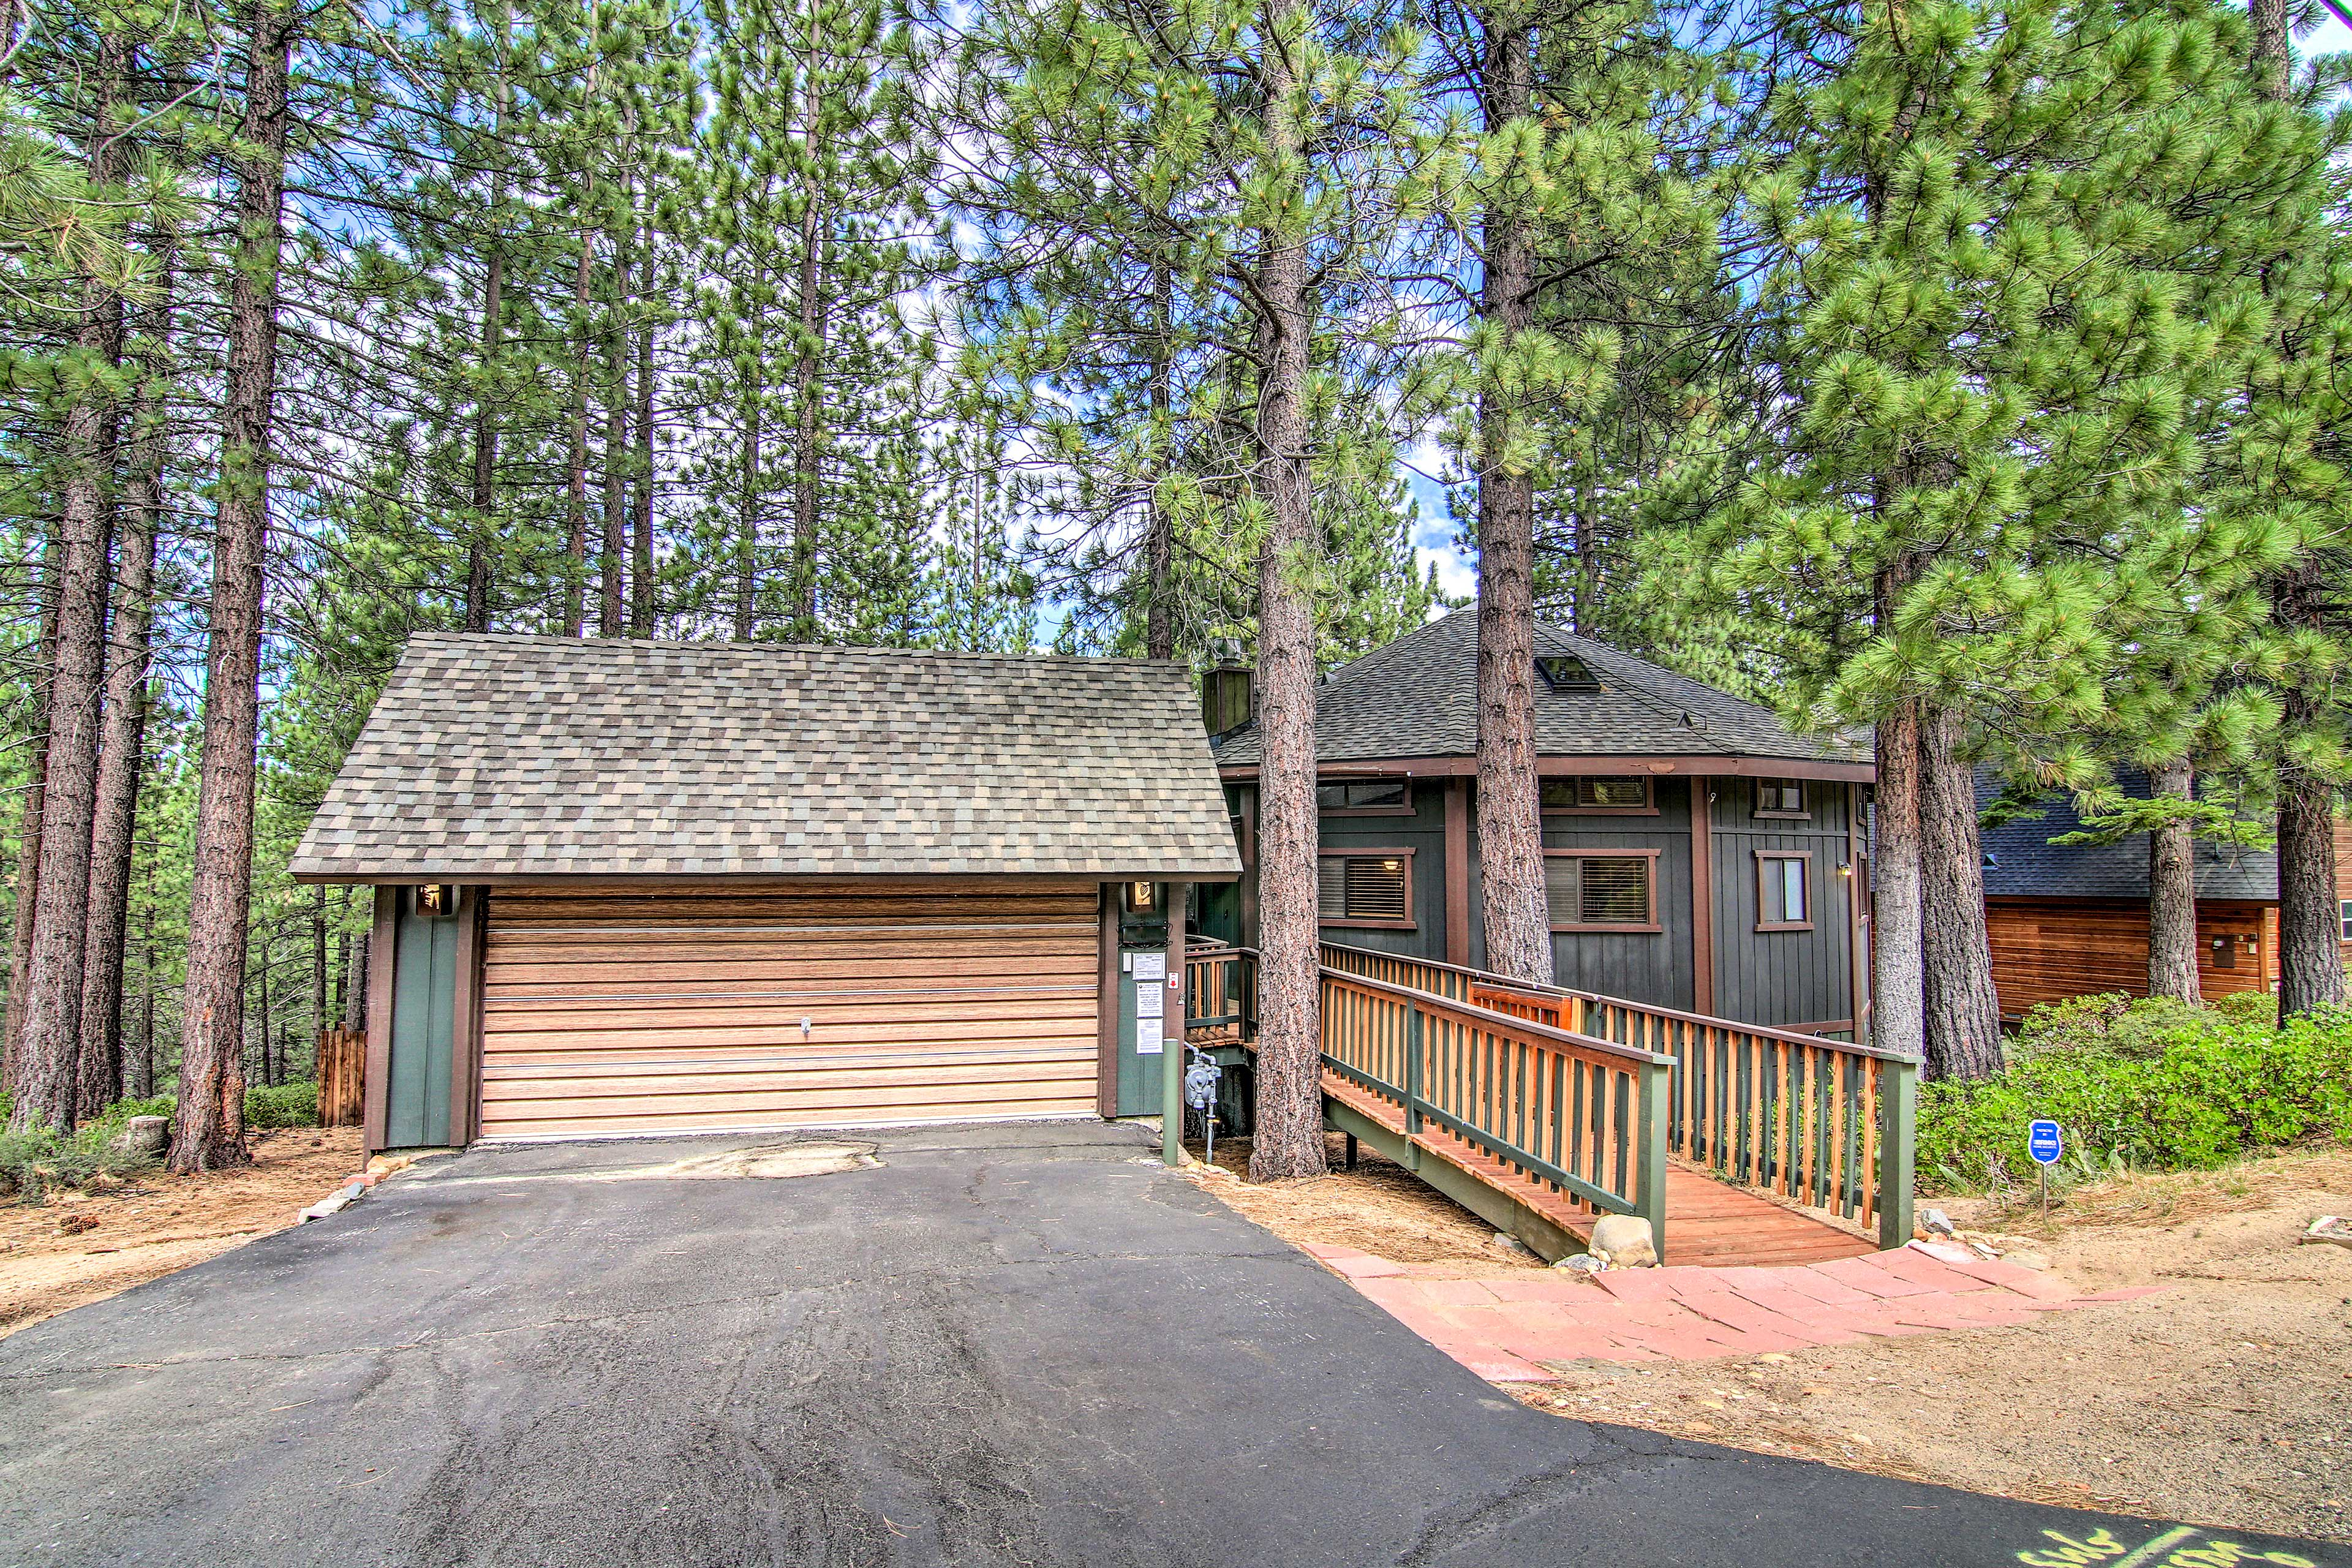 Near lake beaches and ski lifts, this home is a perfect mountain escape.